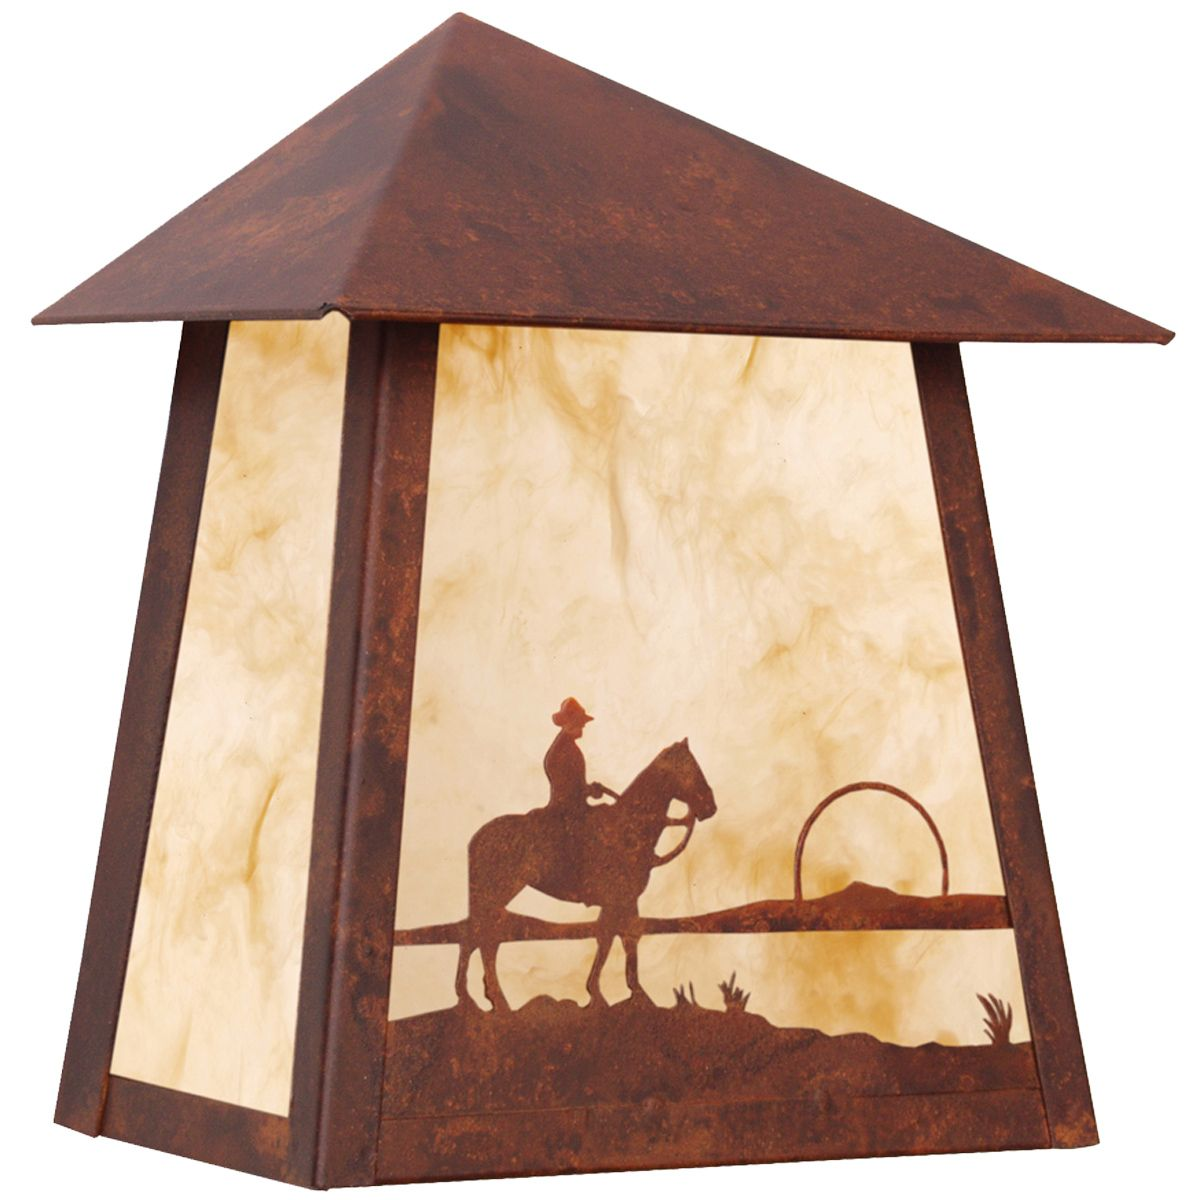 Cowboy at Sunset Wet Location Sconce - Rust